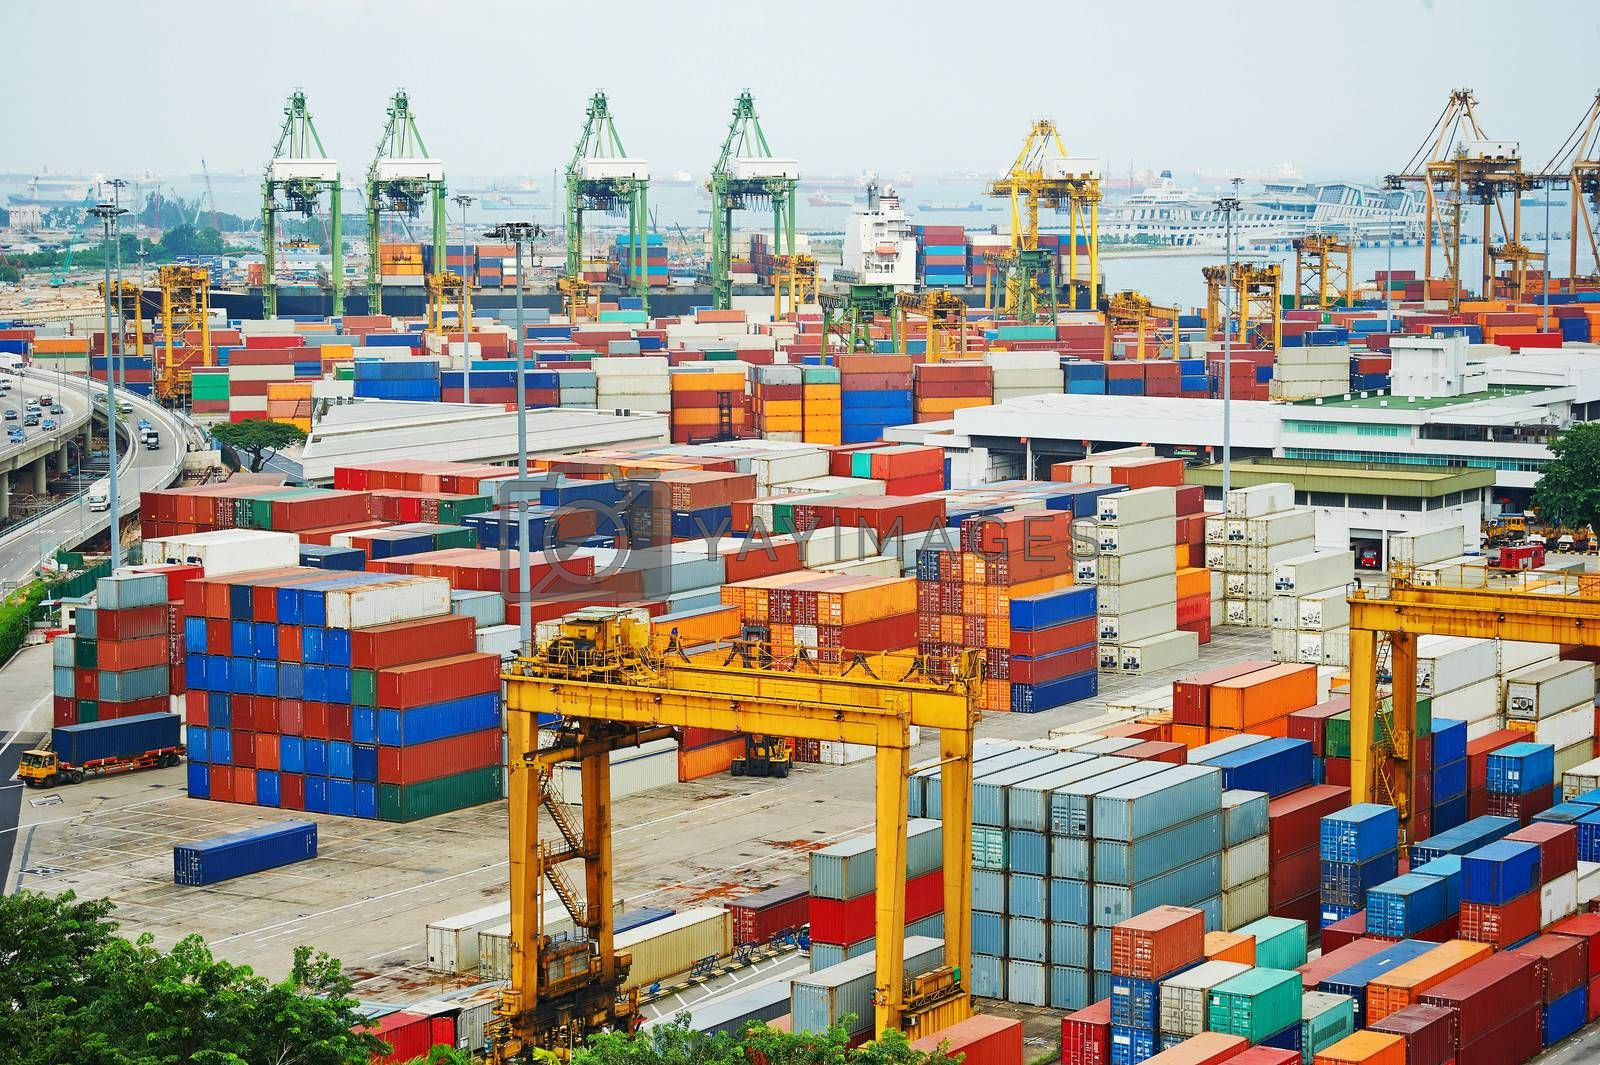 Singapore commercial port . It's the world's busiest port in terms of total shipping tonnage, it transships a fifth of the world shipping containers